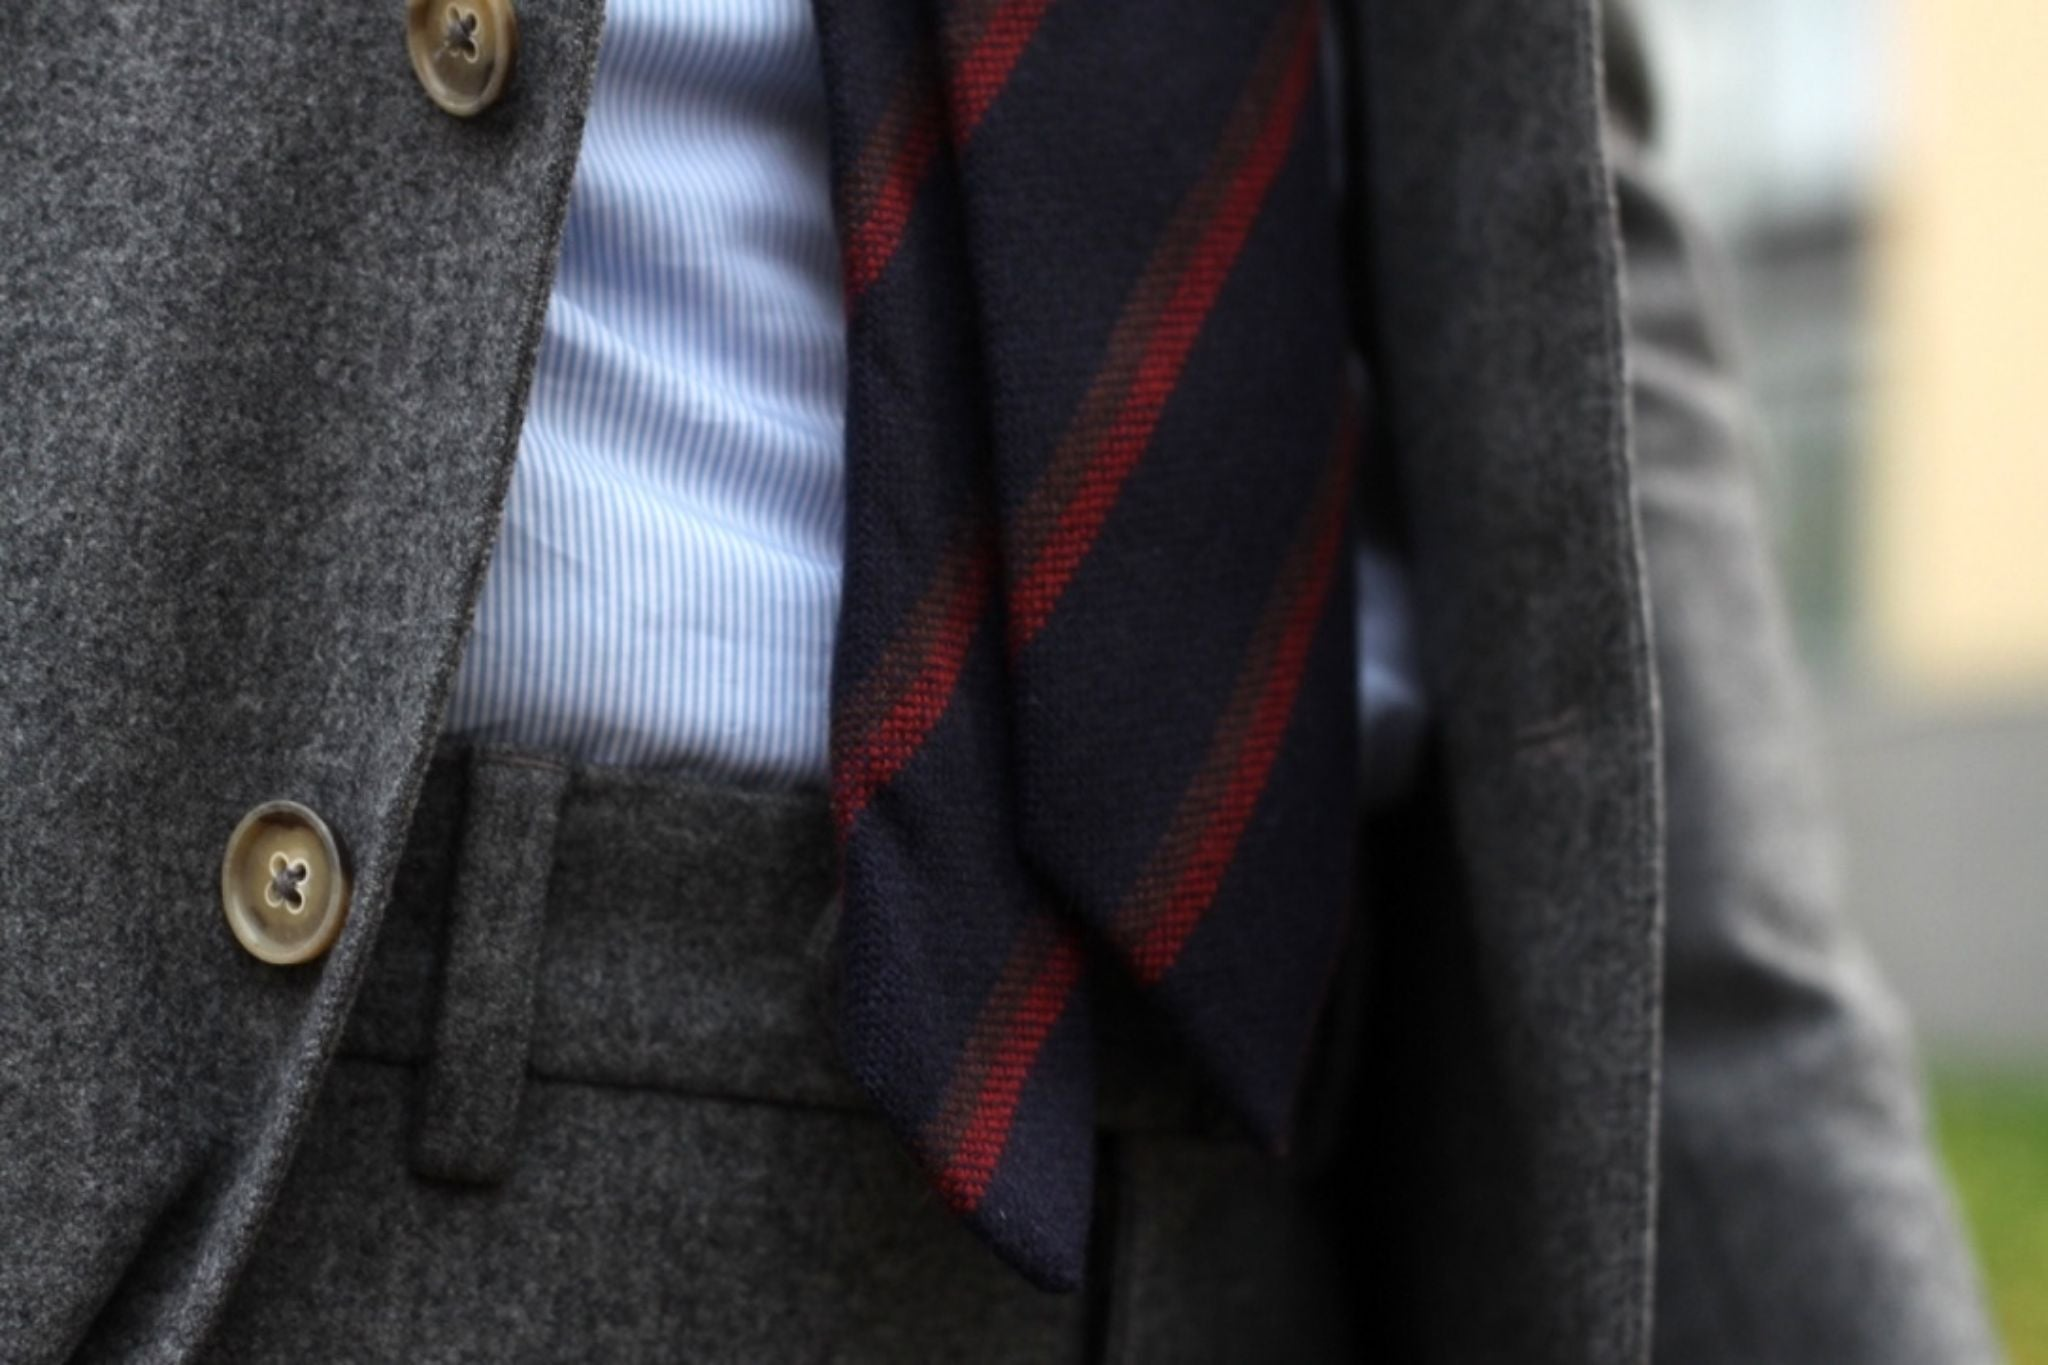 Suit with cashmere tie - Drake's London tie with brown and red stripes